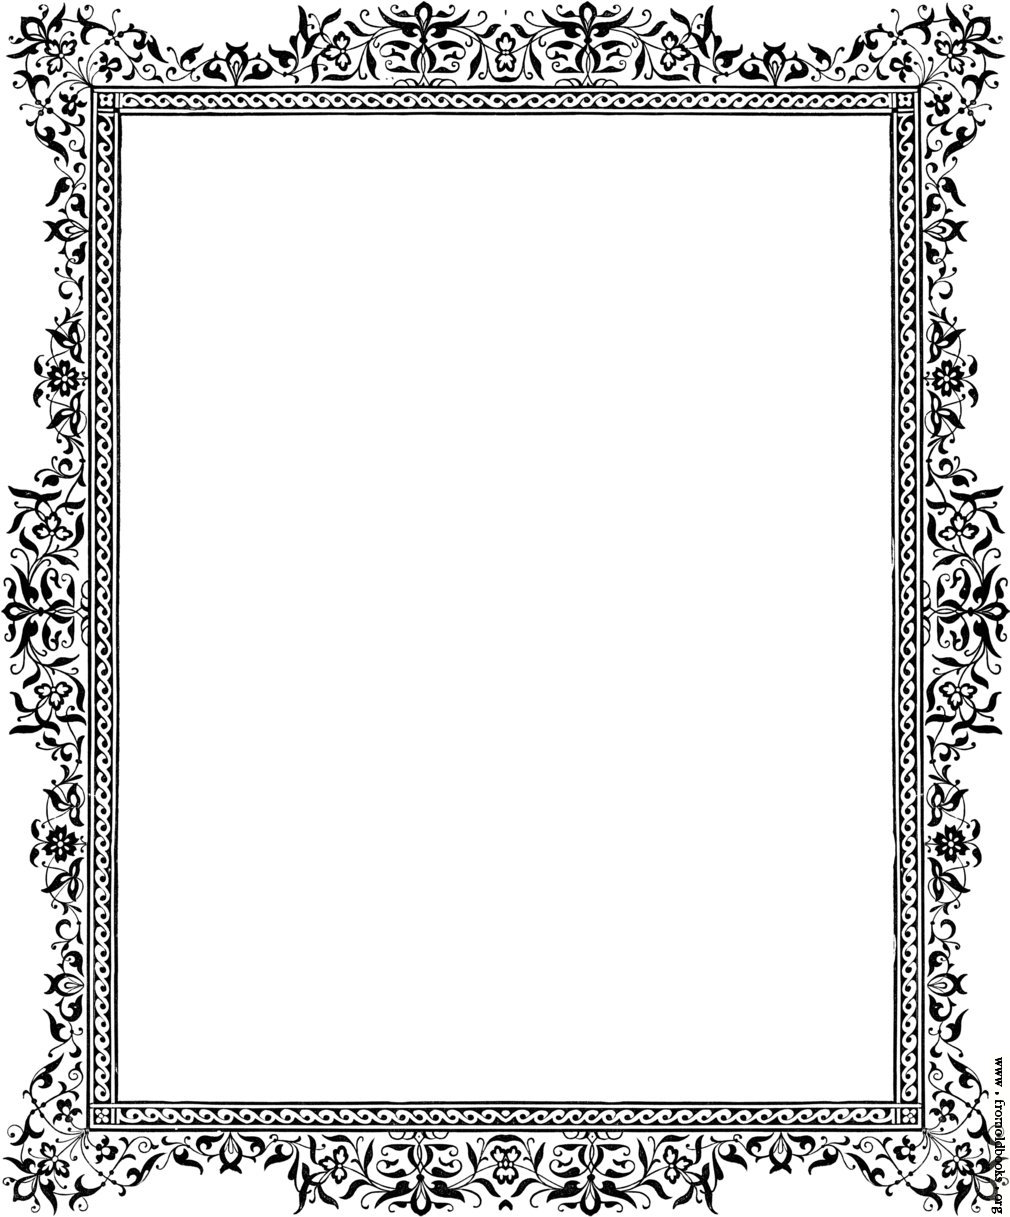 Beautiful clip art borders clipart library library Beautiful borders clip art - ClipartFest clipart library library